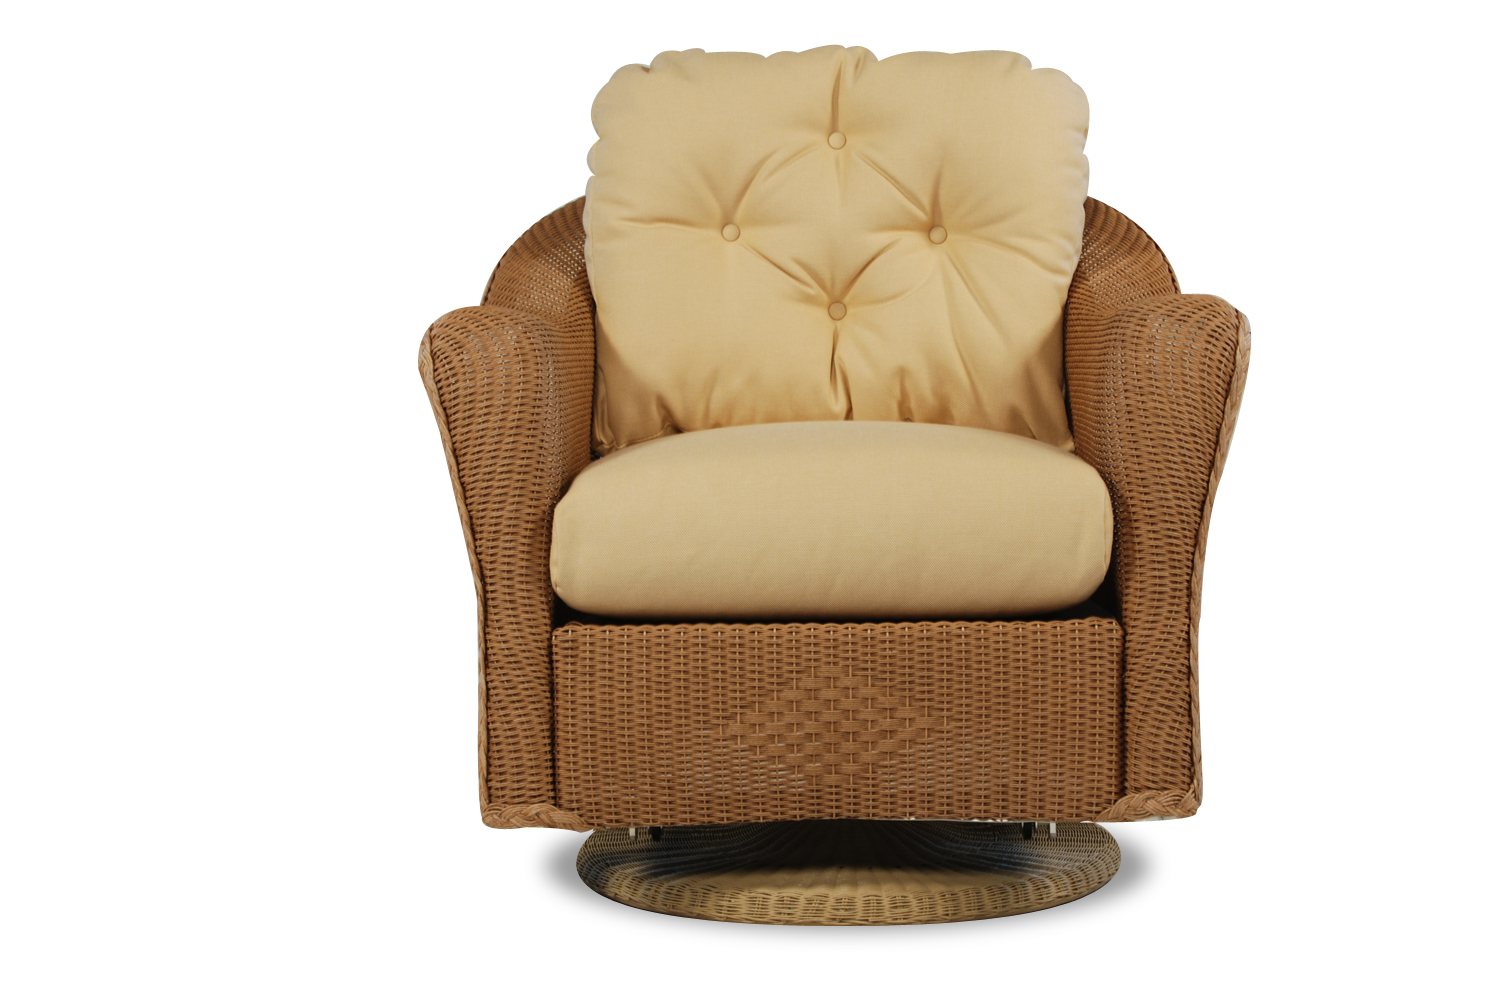 900SG - Reflections Swivel Glider Cushions